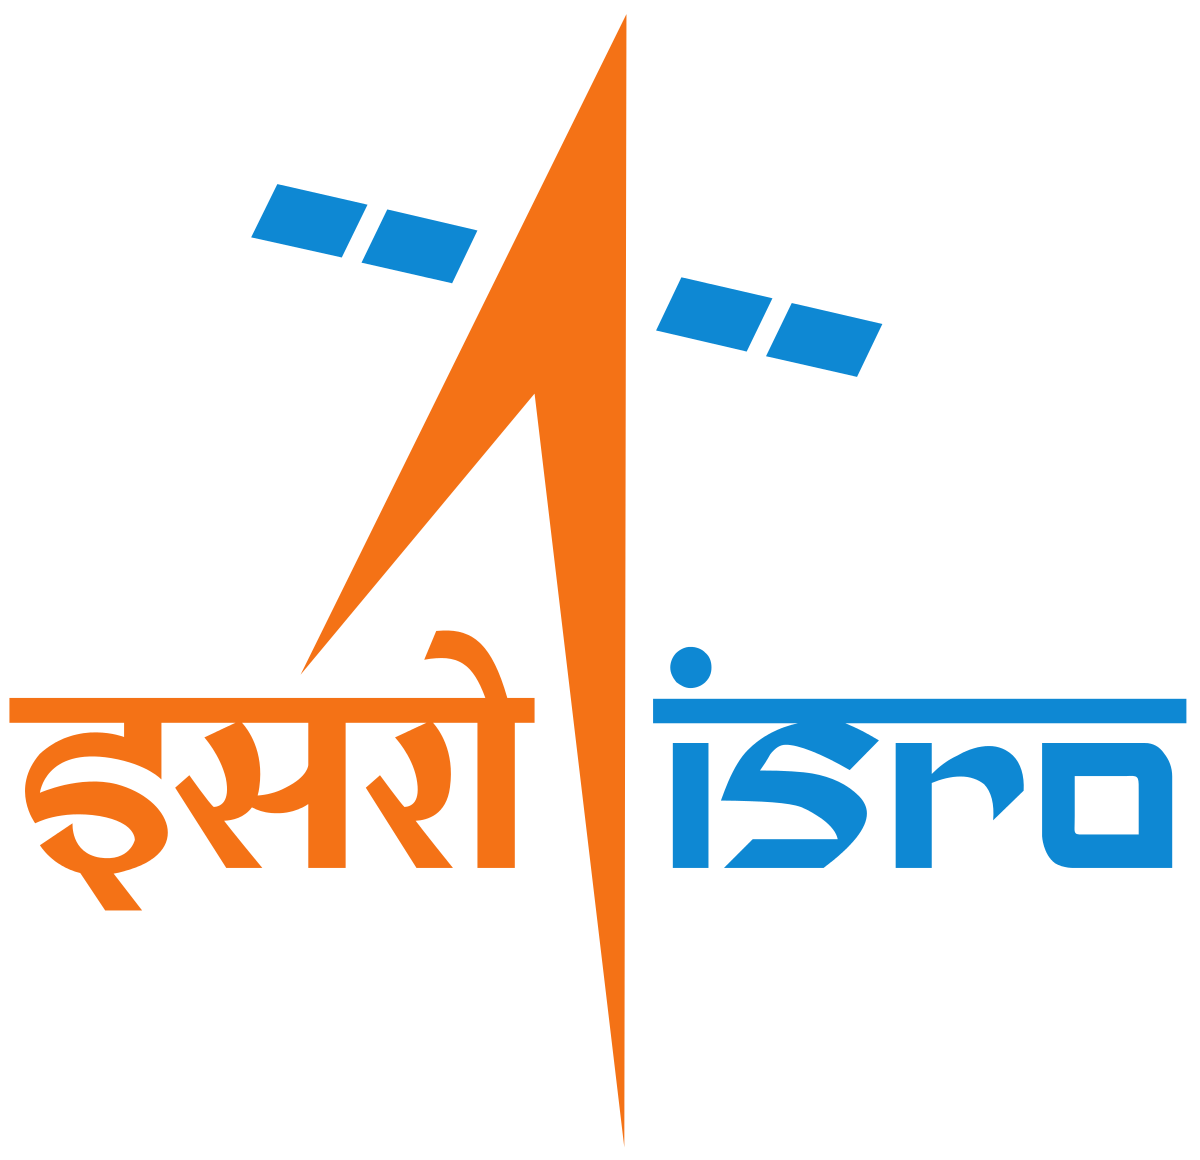 Lularoe vector 17 vision. Indian space research organisation